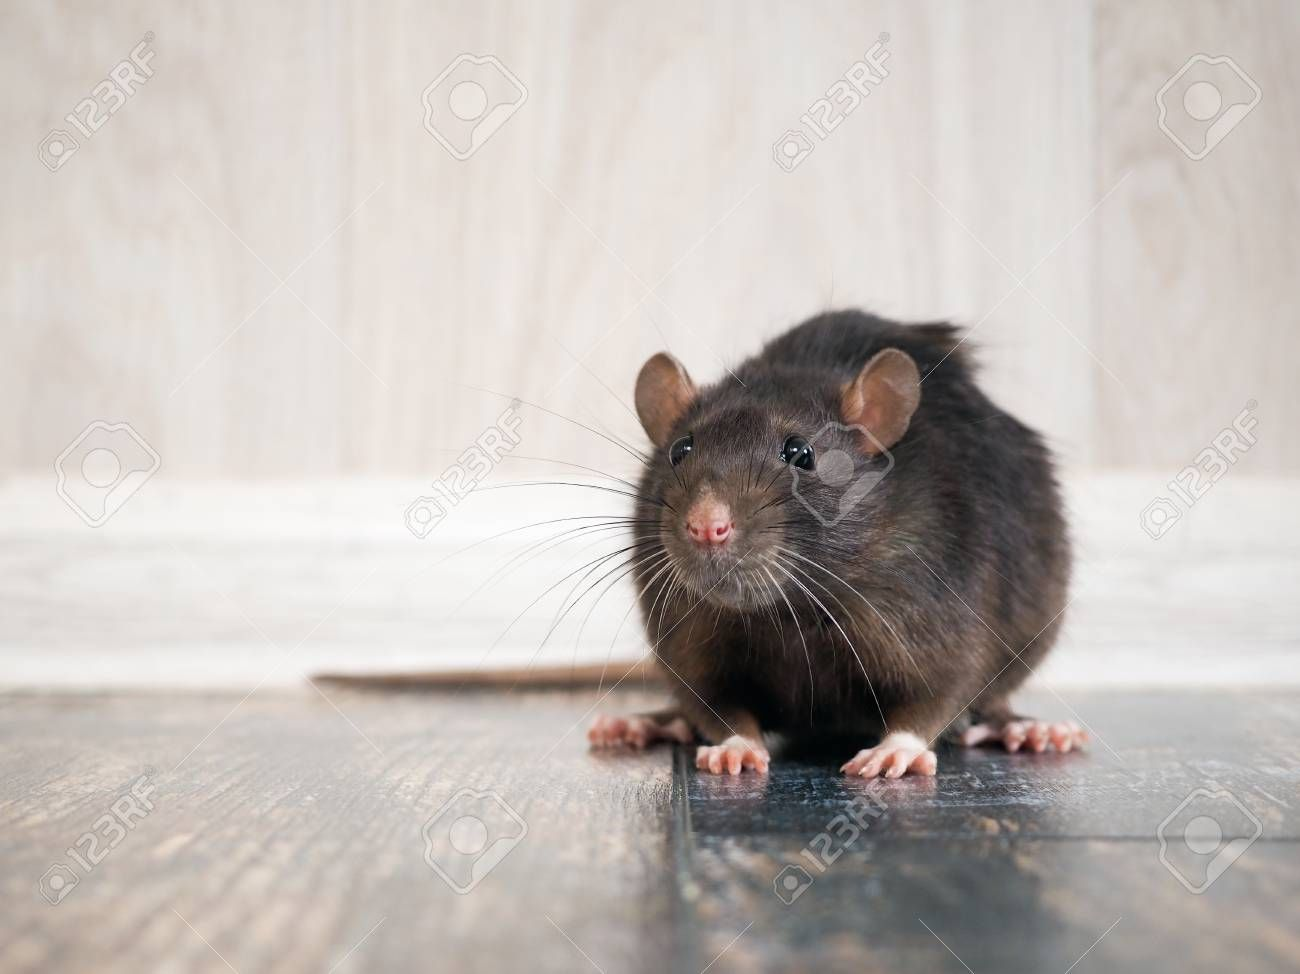 Rat In The House On The Floor Affiliate Rat House Floor Rodent Problem Rodents Rodent Control